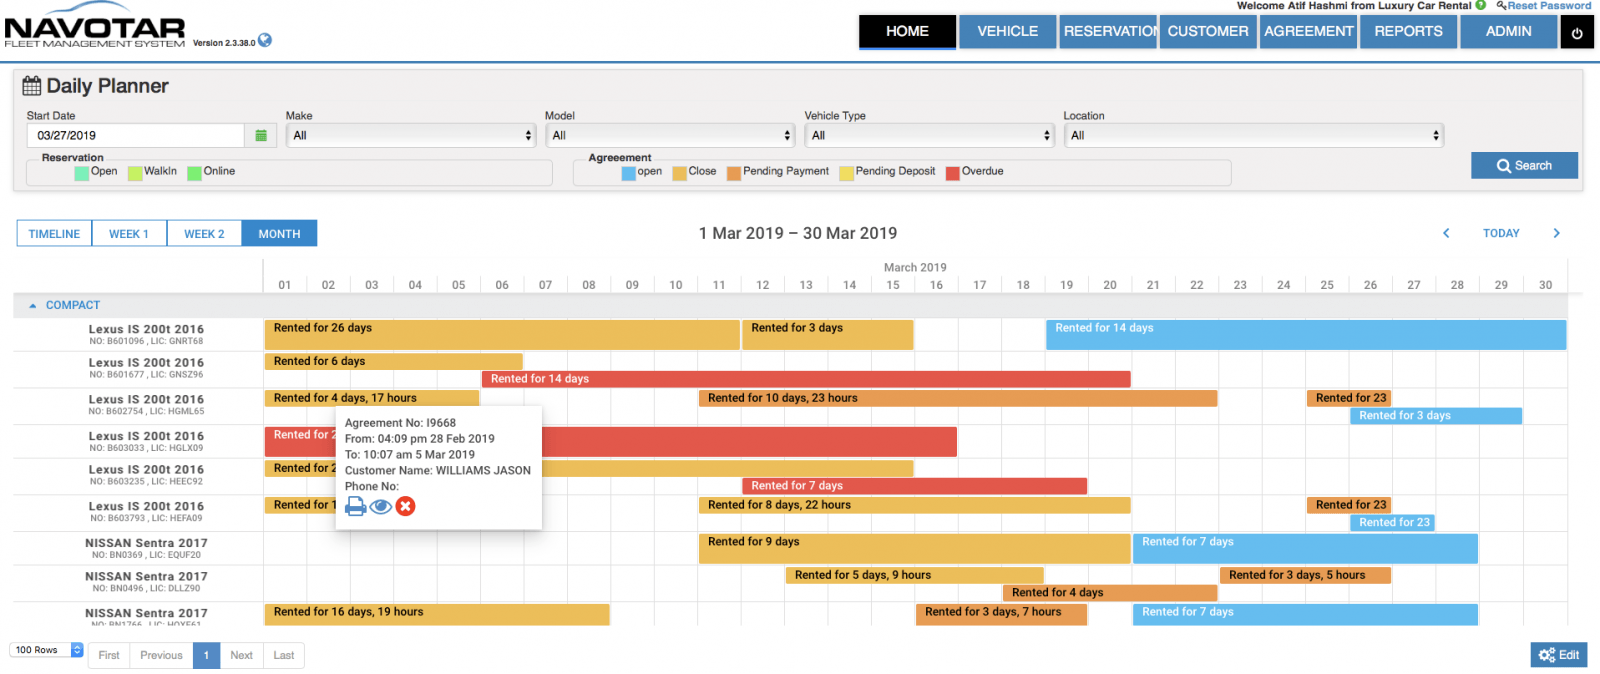 Navotar Launches New Daily Planner